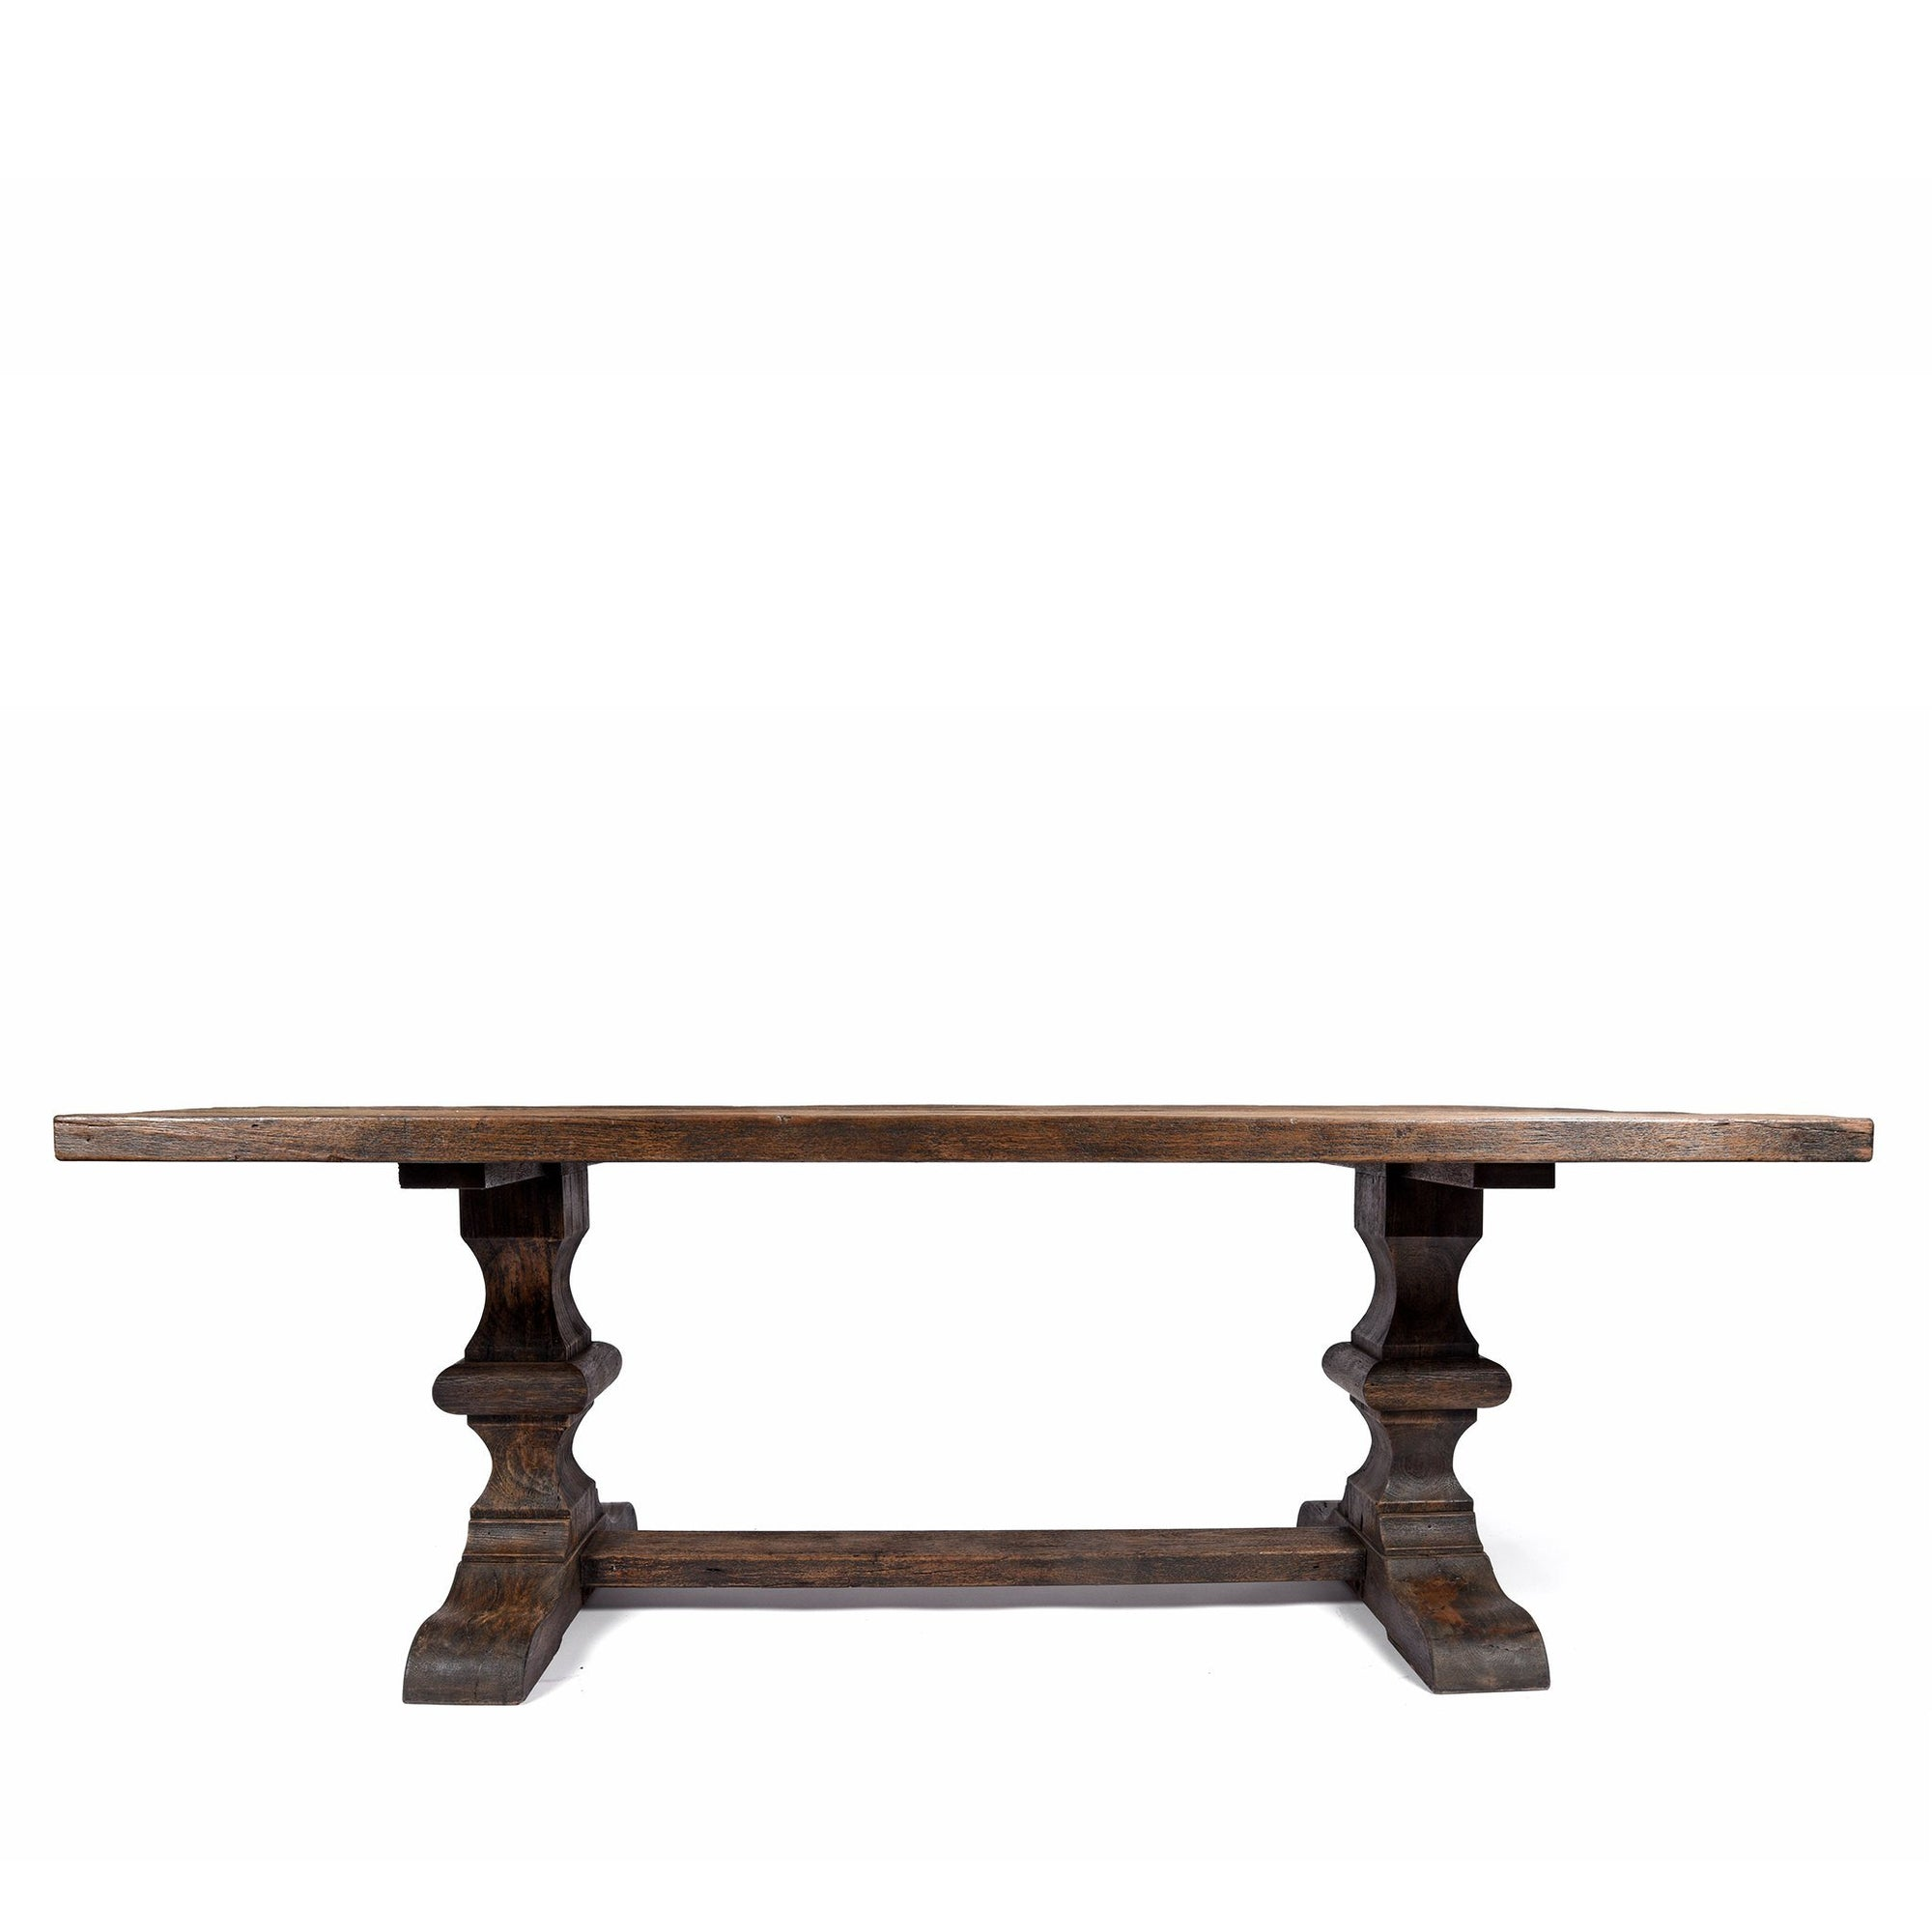 6- 8 Seater Refectory Dining Table - Reclaimed Teakwood | Indigo Oriental Antiques